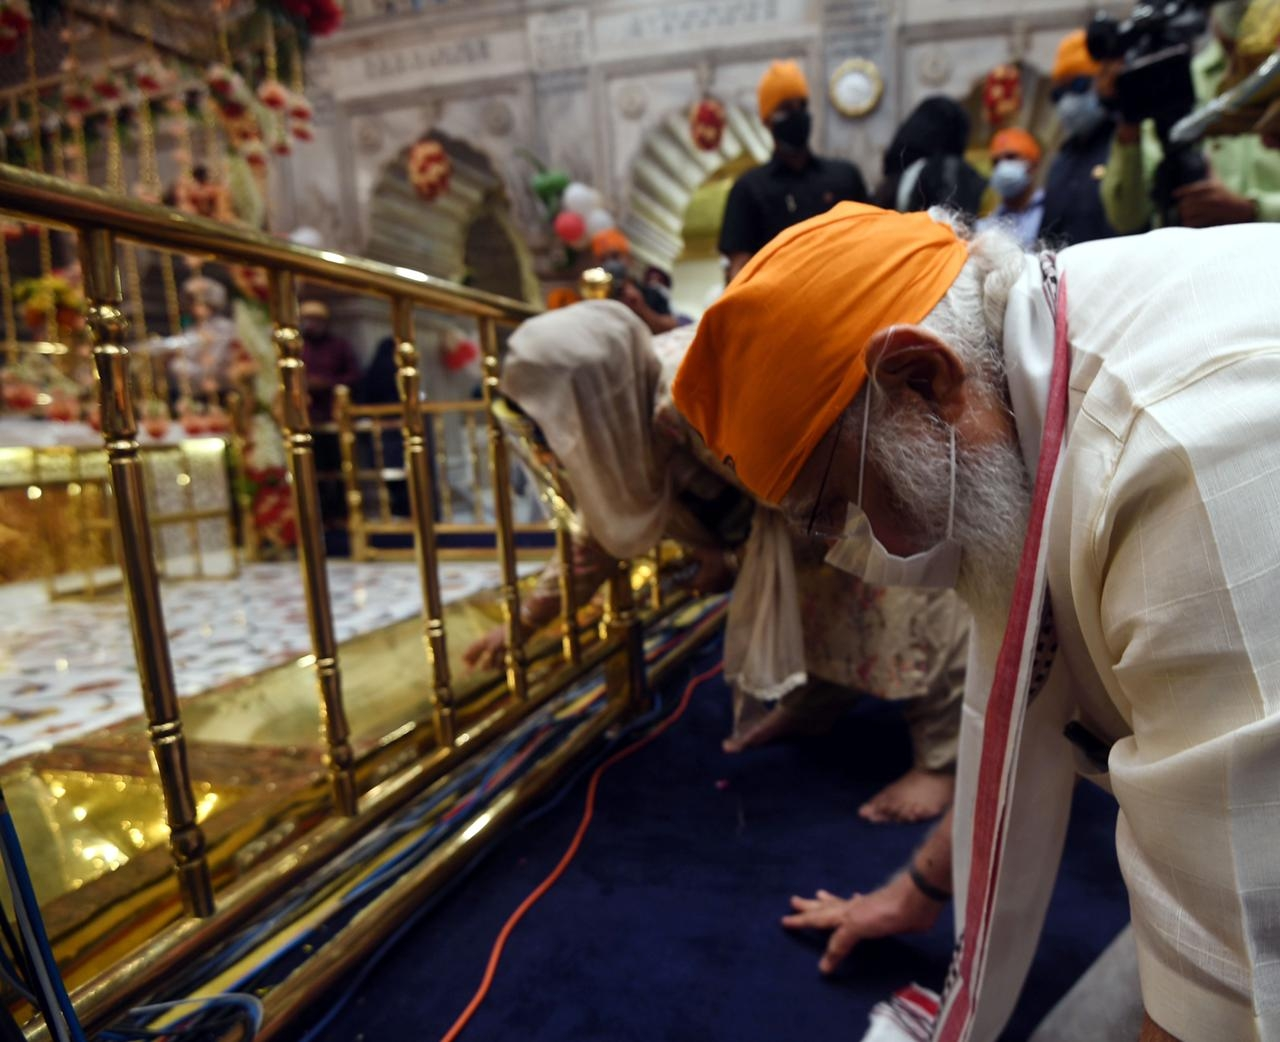 <p>Today morning, PM Narendra Modi visited Sis Ganj Gurudwara in New Delhi and prayed there.He visited there without a security route & special security arrangements at the…